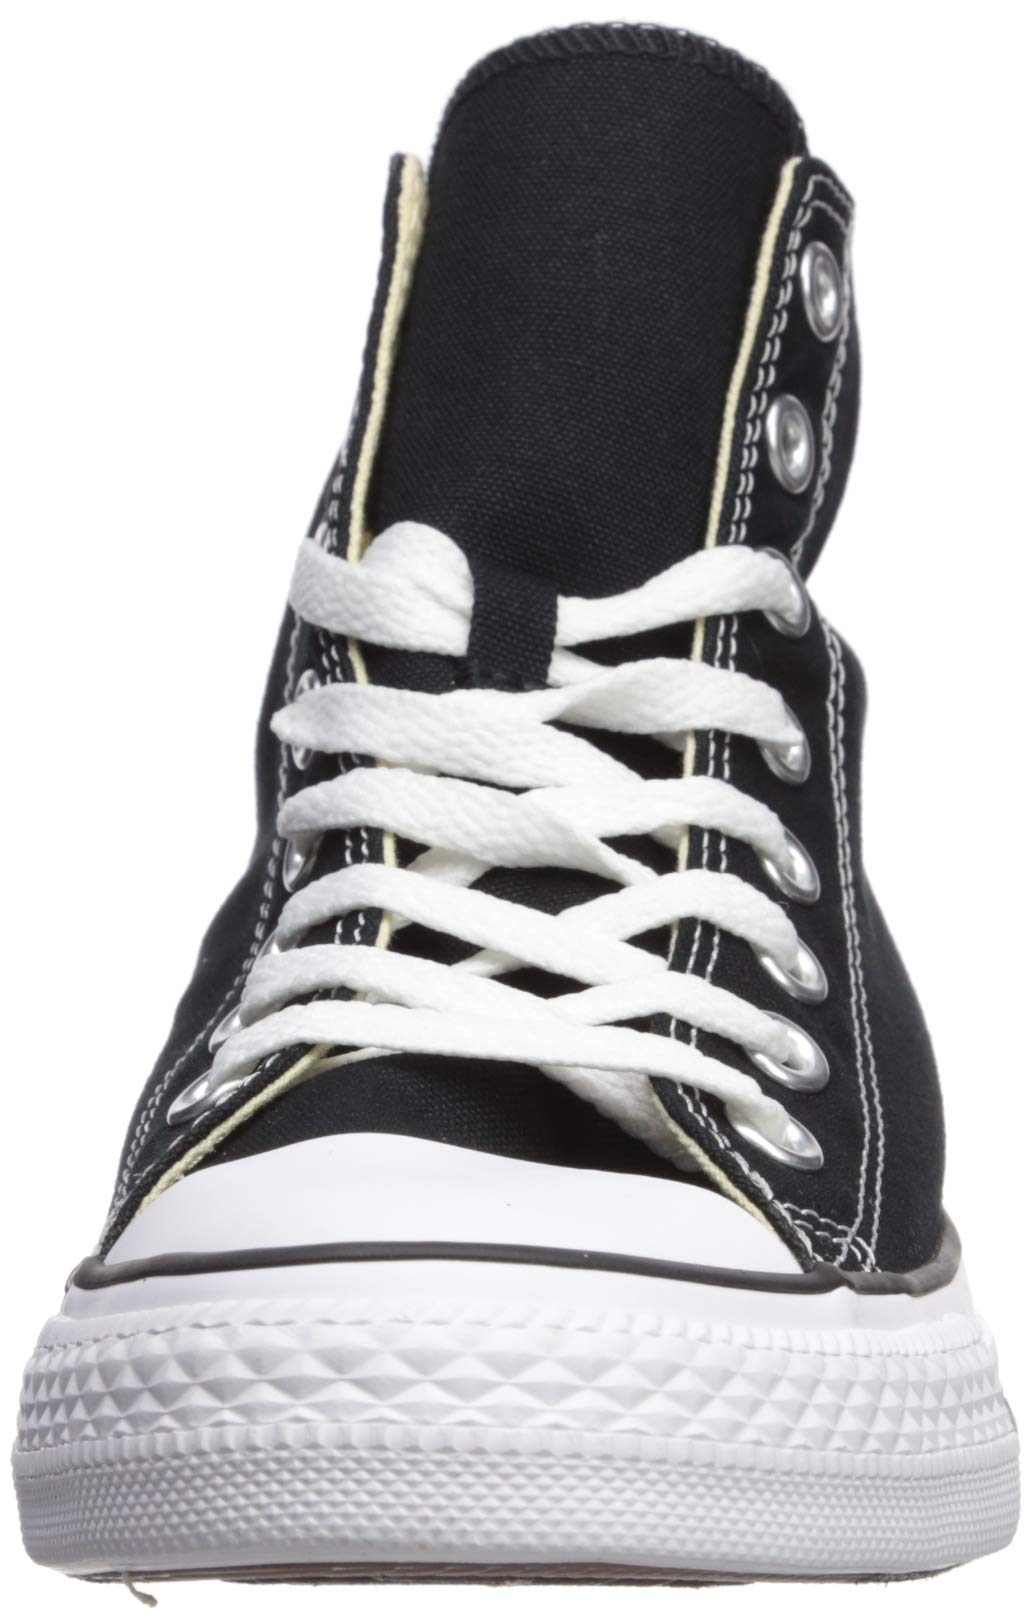 Chuck Taylor All Star Canvas High Top, Black, 4 M US by Converse (Image #4)